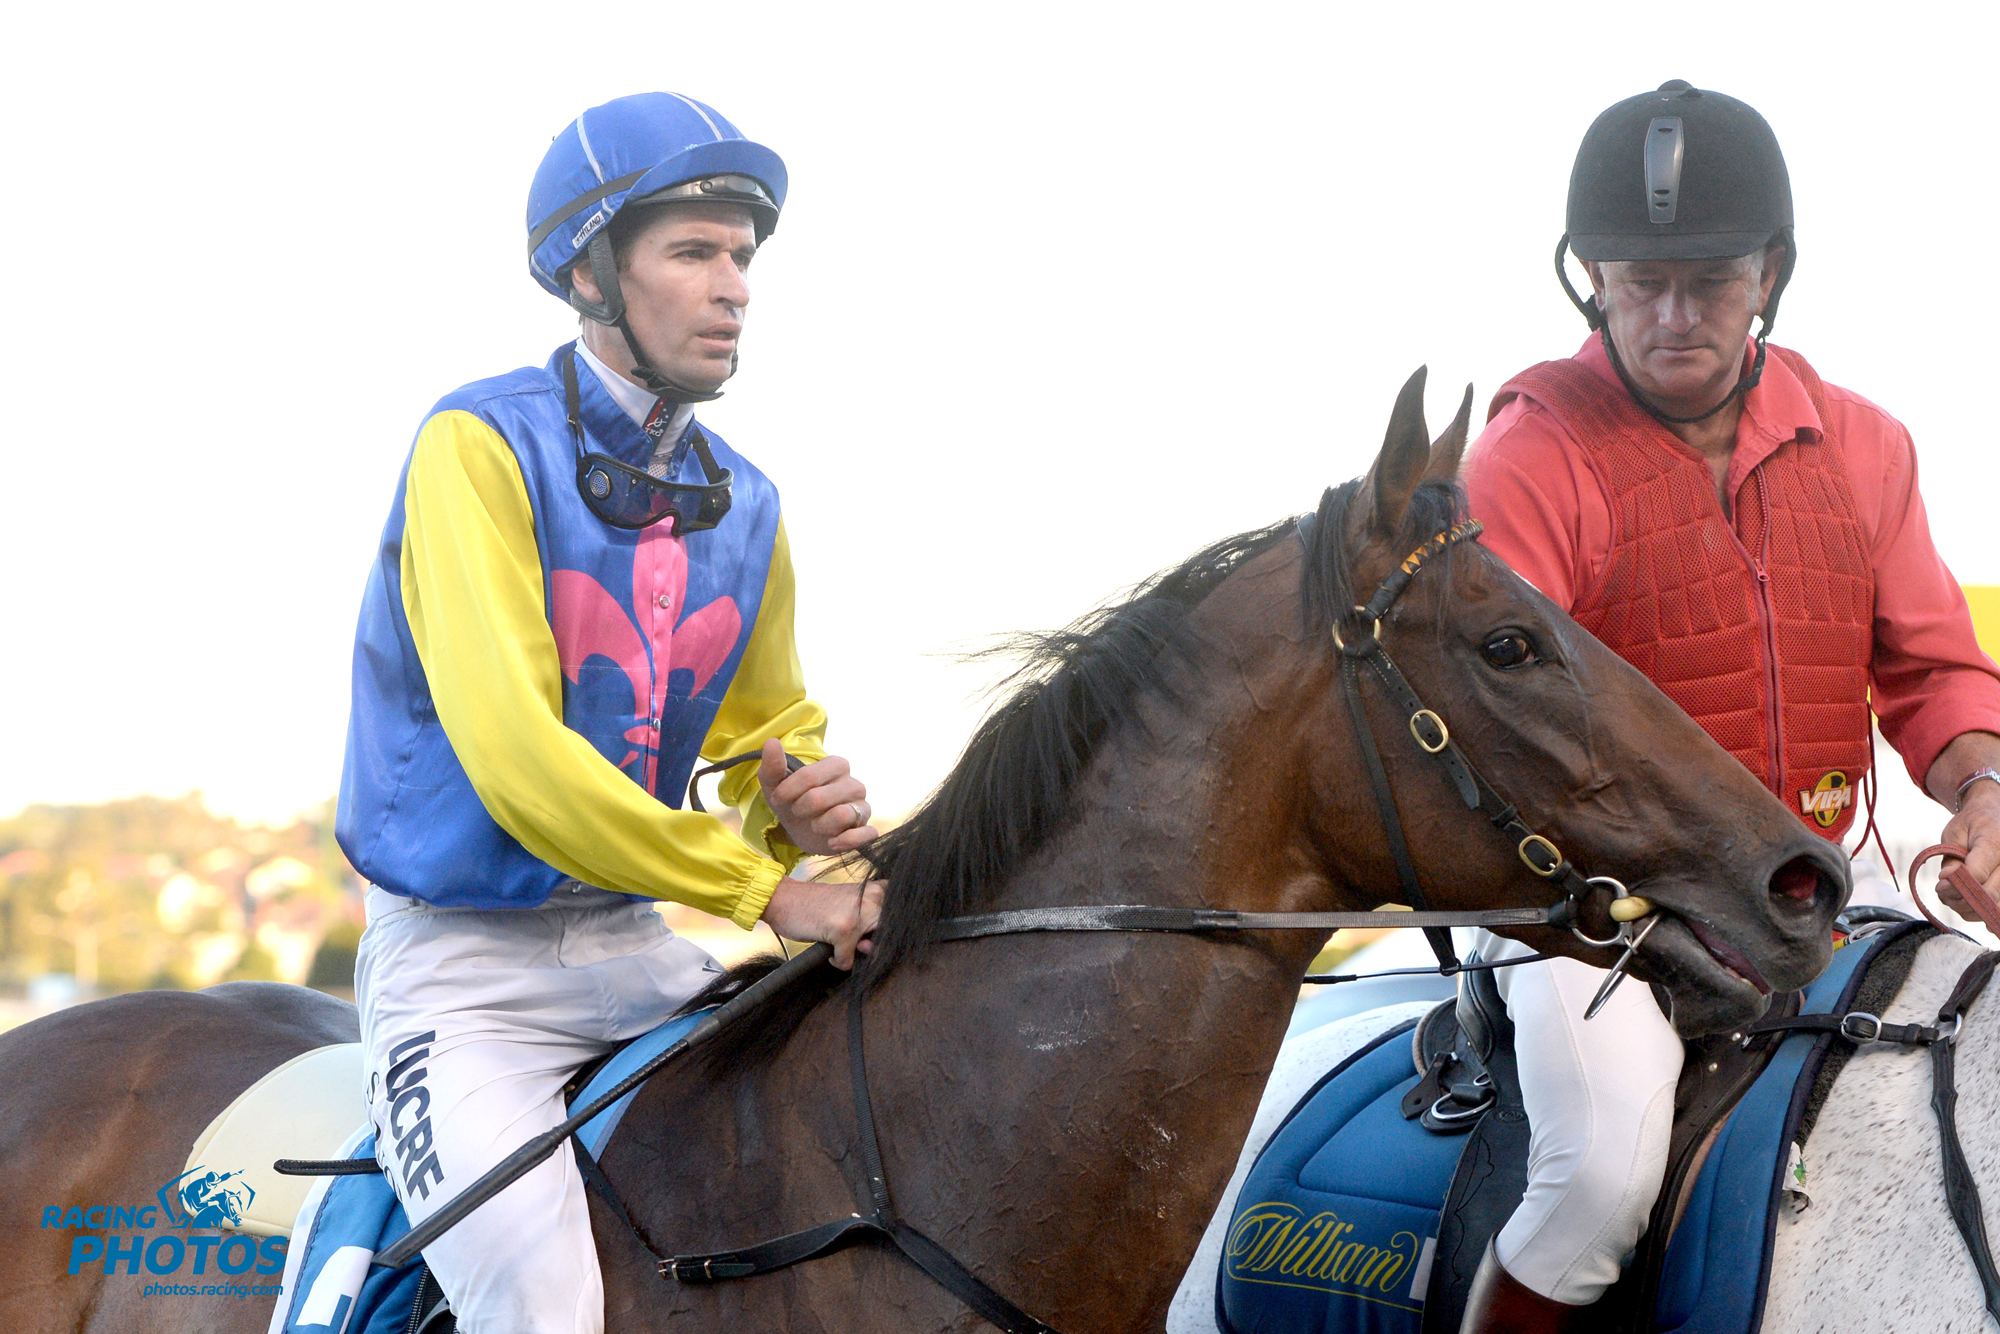 Image courtesy Racing Photos - Steve Arnold returns to scale on Federosa.